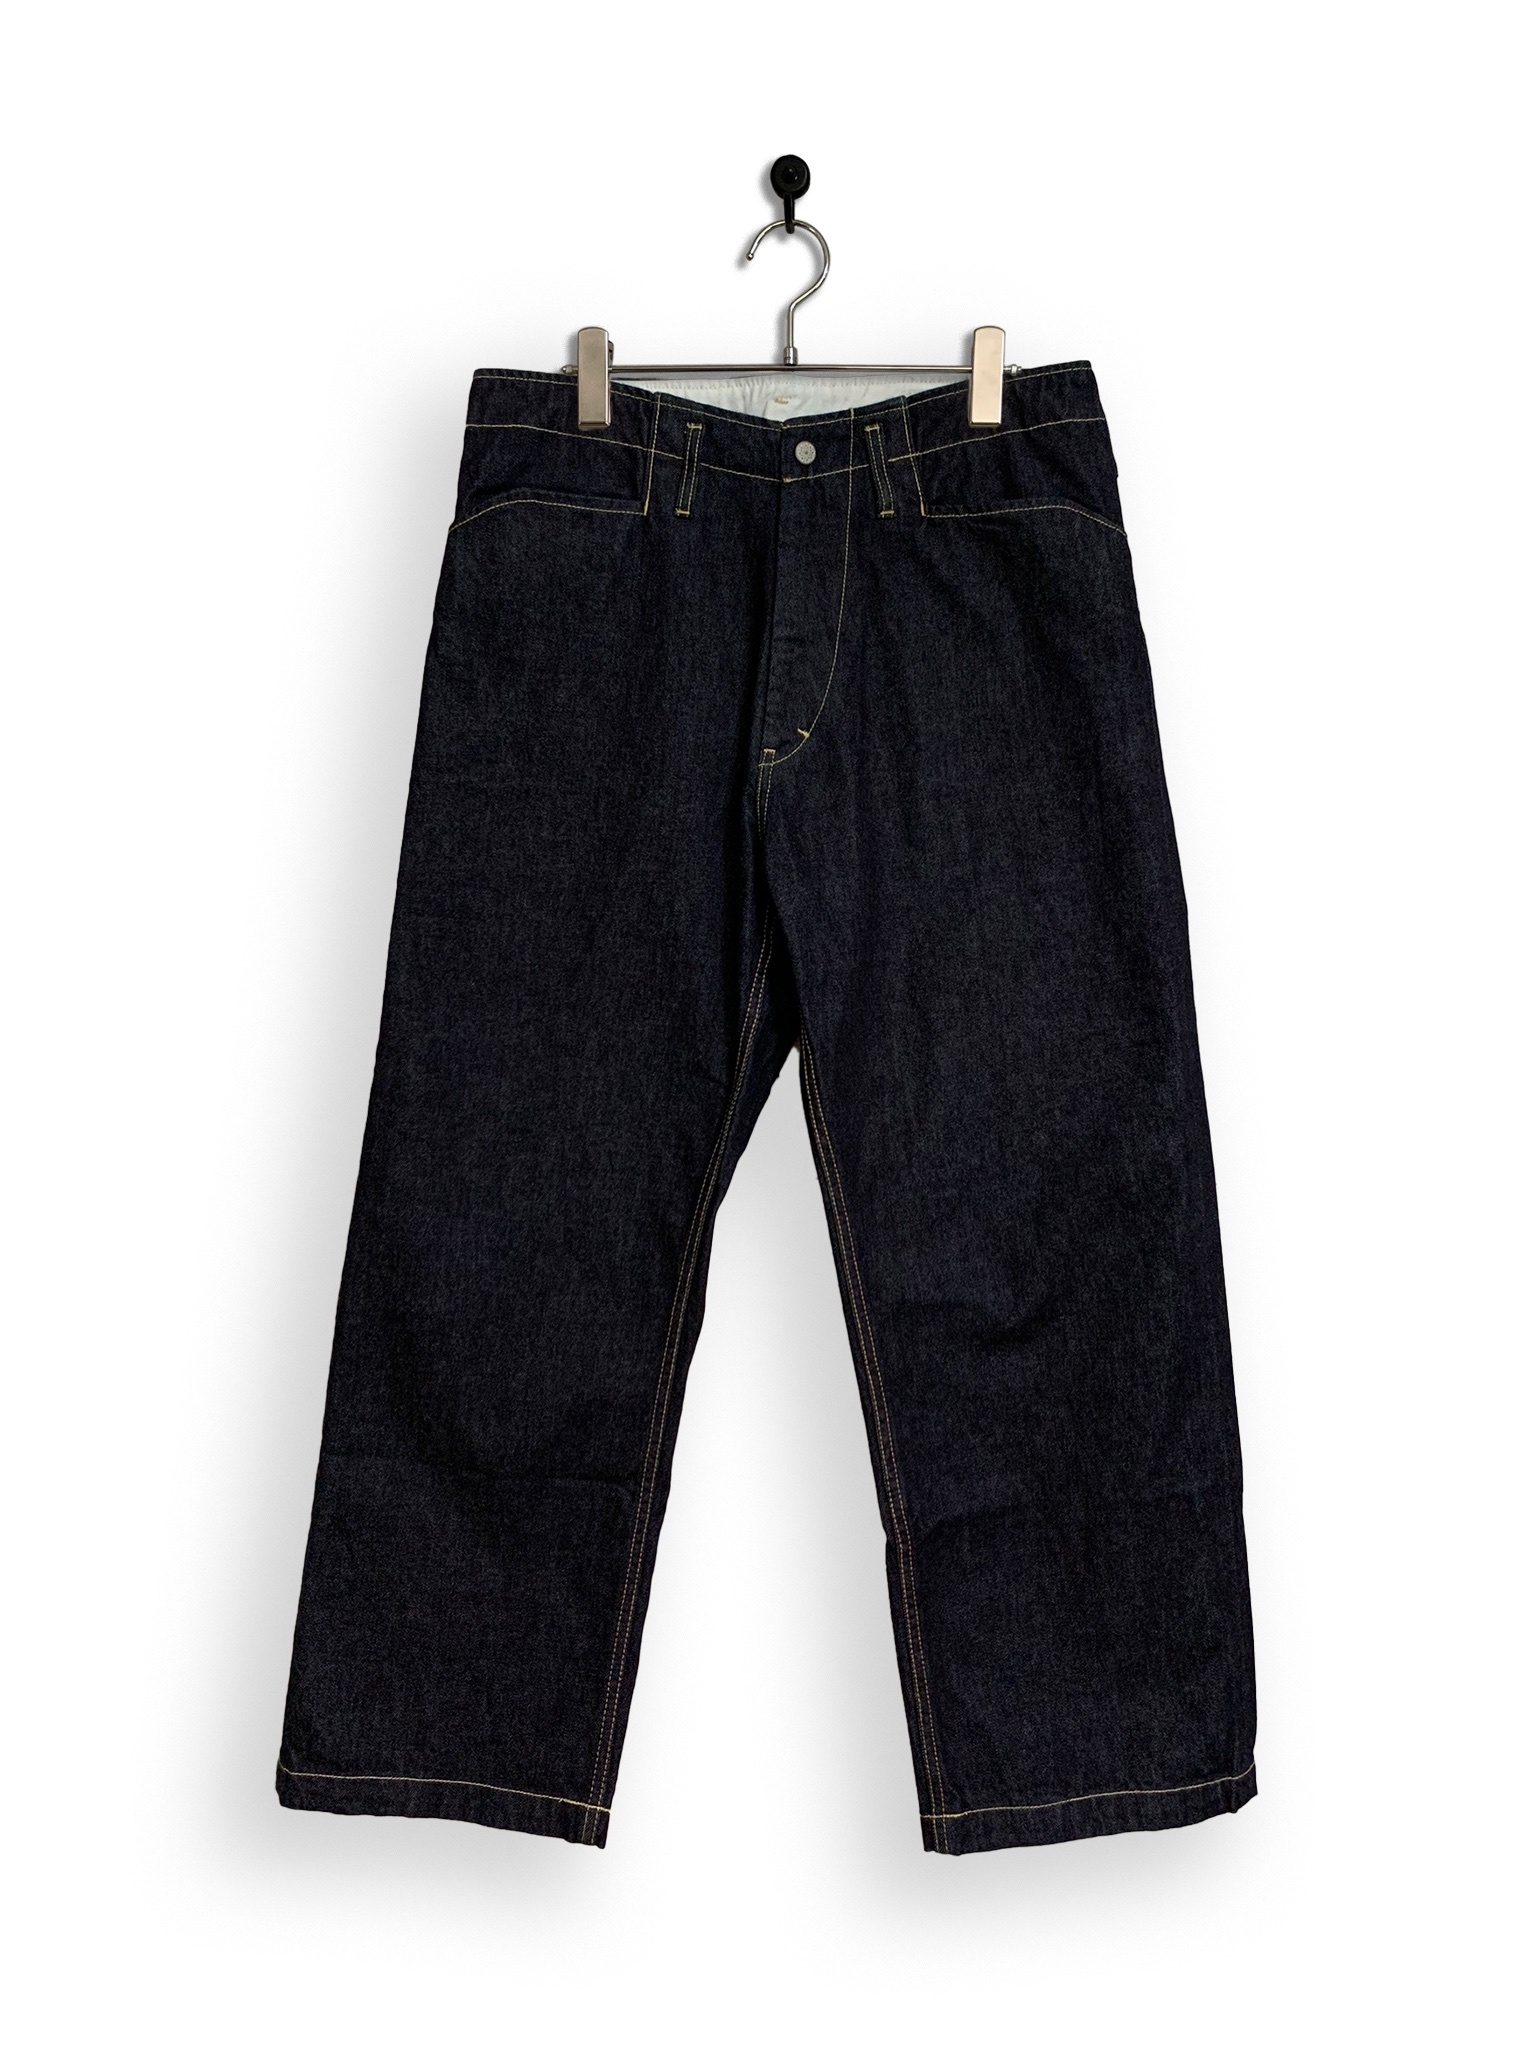 12.5oz Denim Frisco Pants / one wash